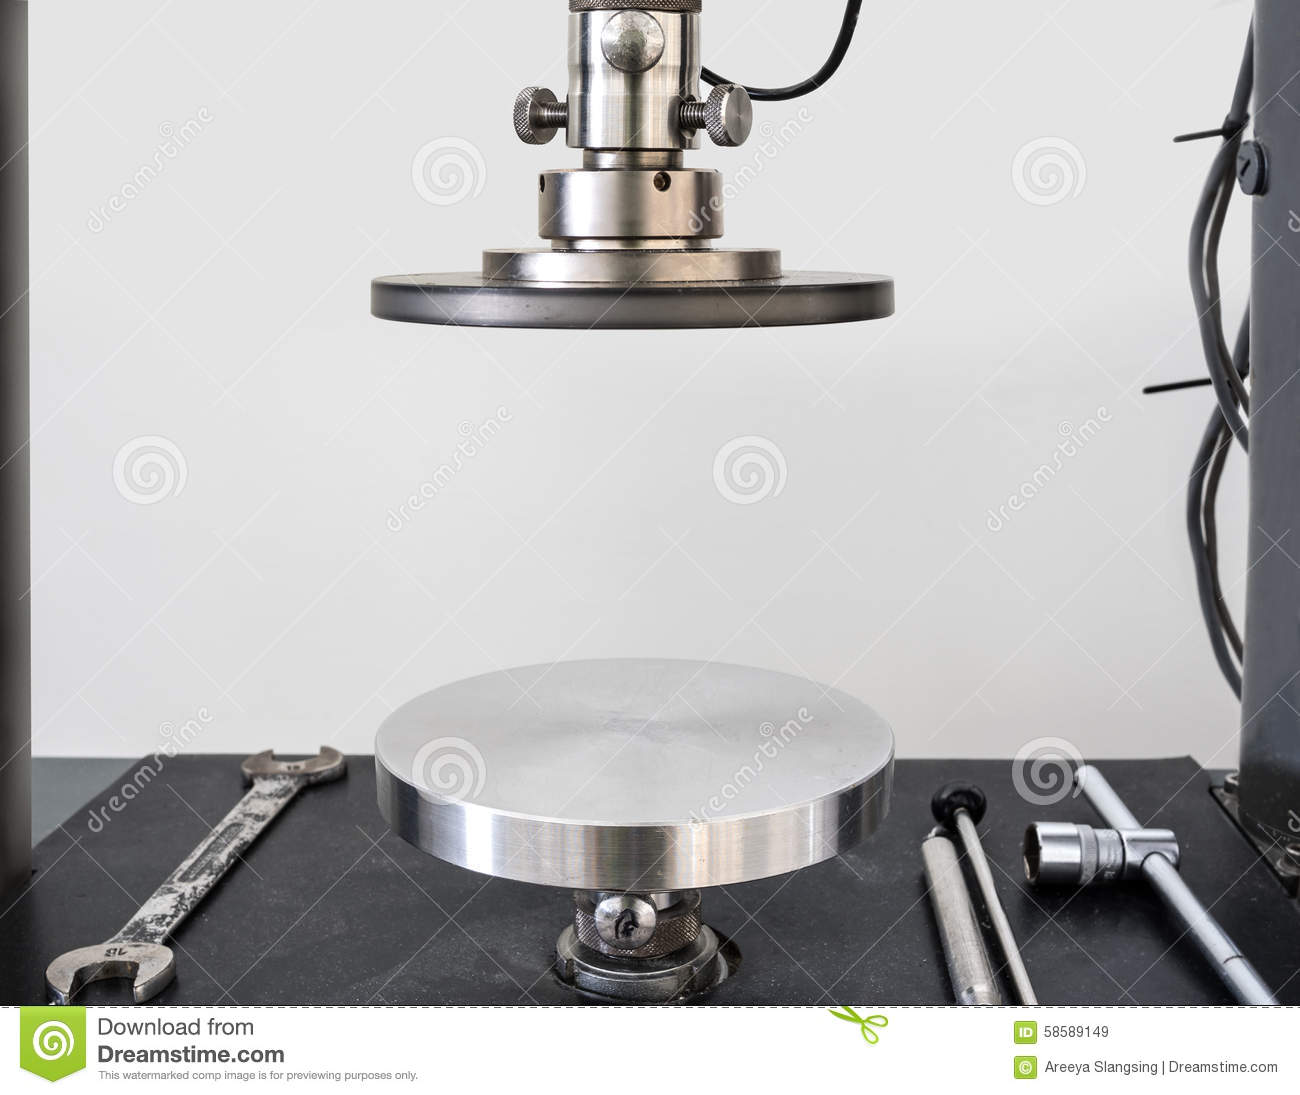 Circular Plate Can Press Sample To Calculate Physical